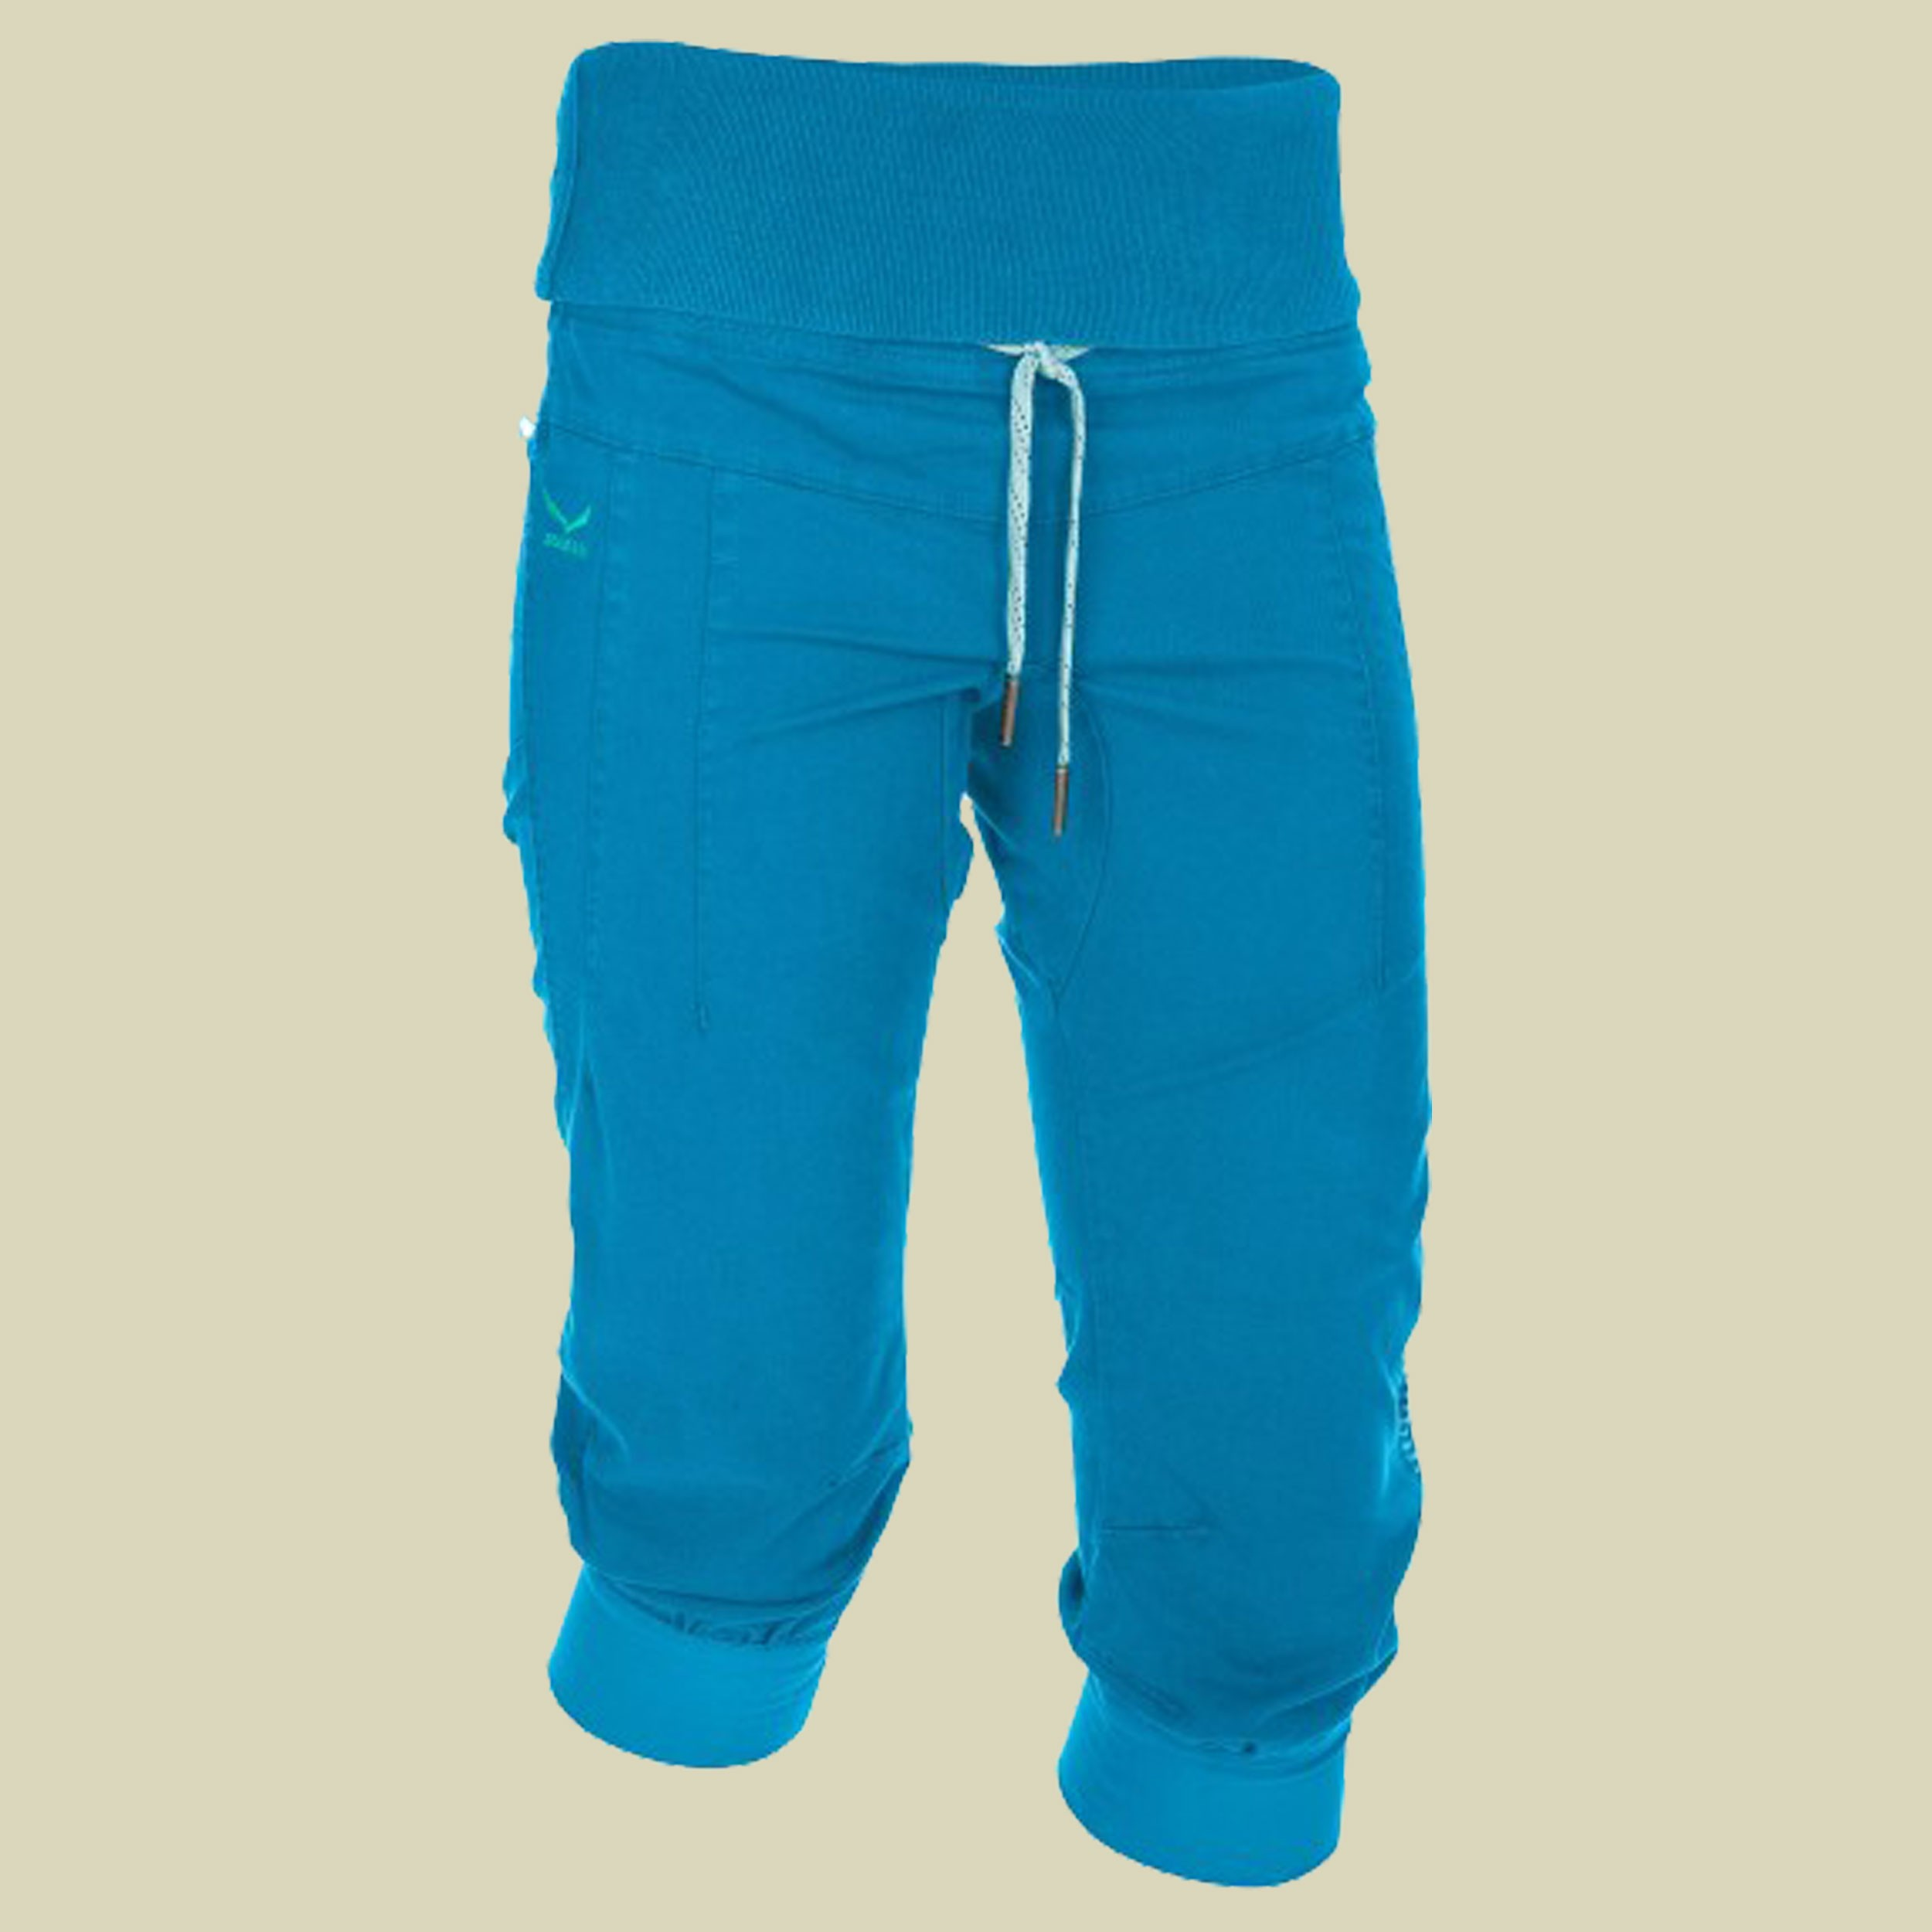 Calanques 2.0 Co 3/4 Pant Women